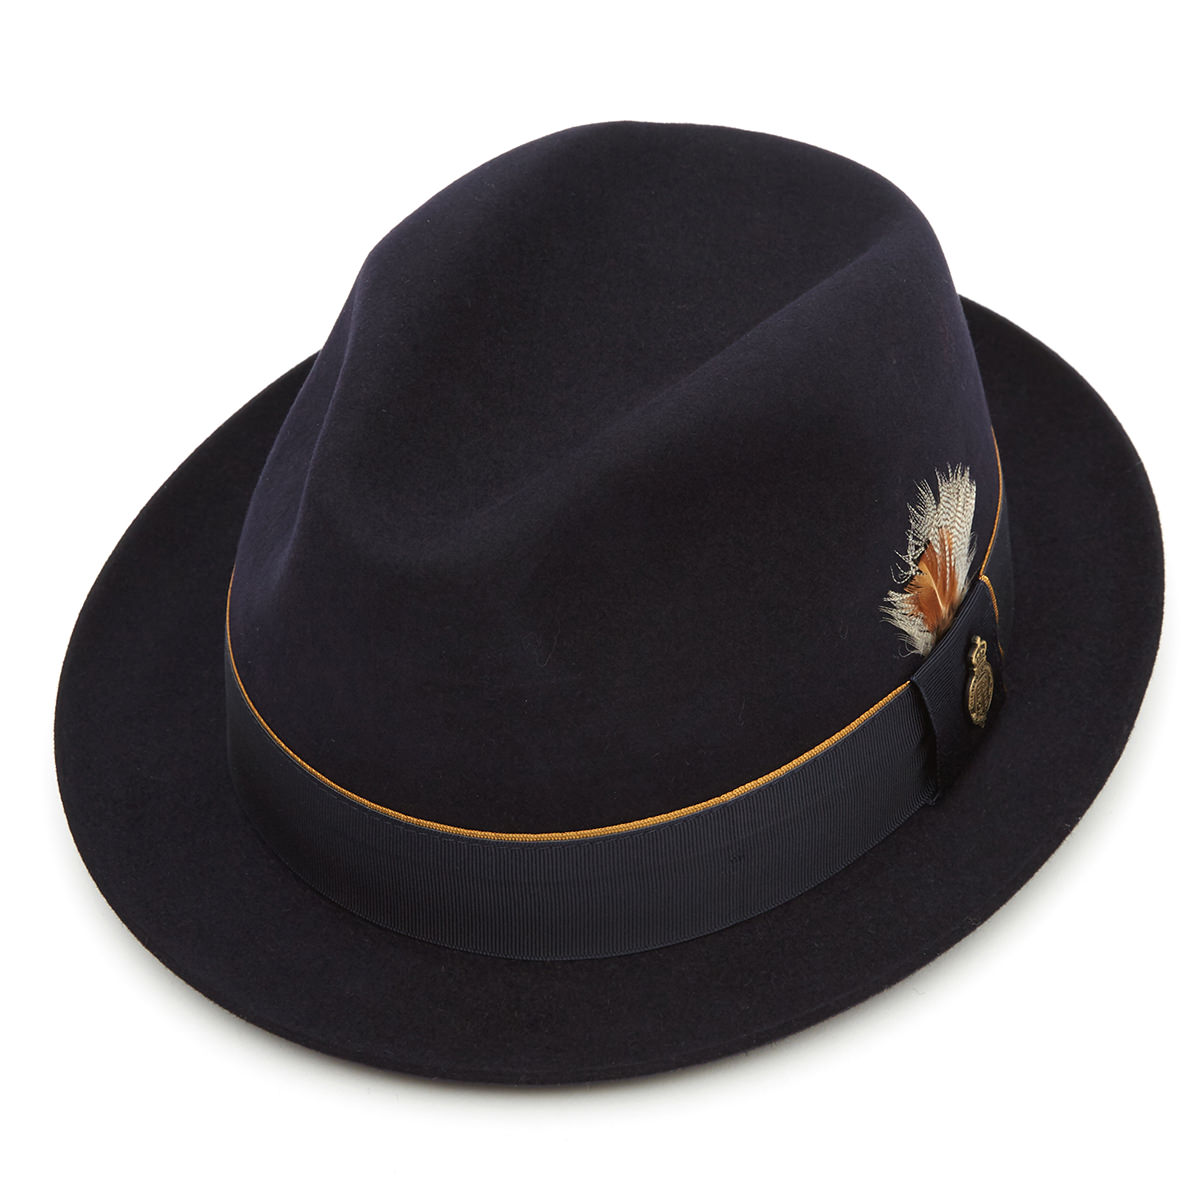 Finchley Fur Felt Trilby Hat Navy 60